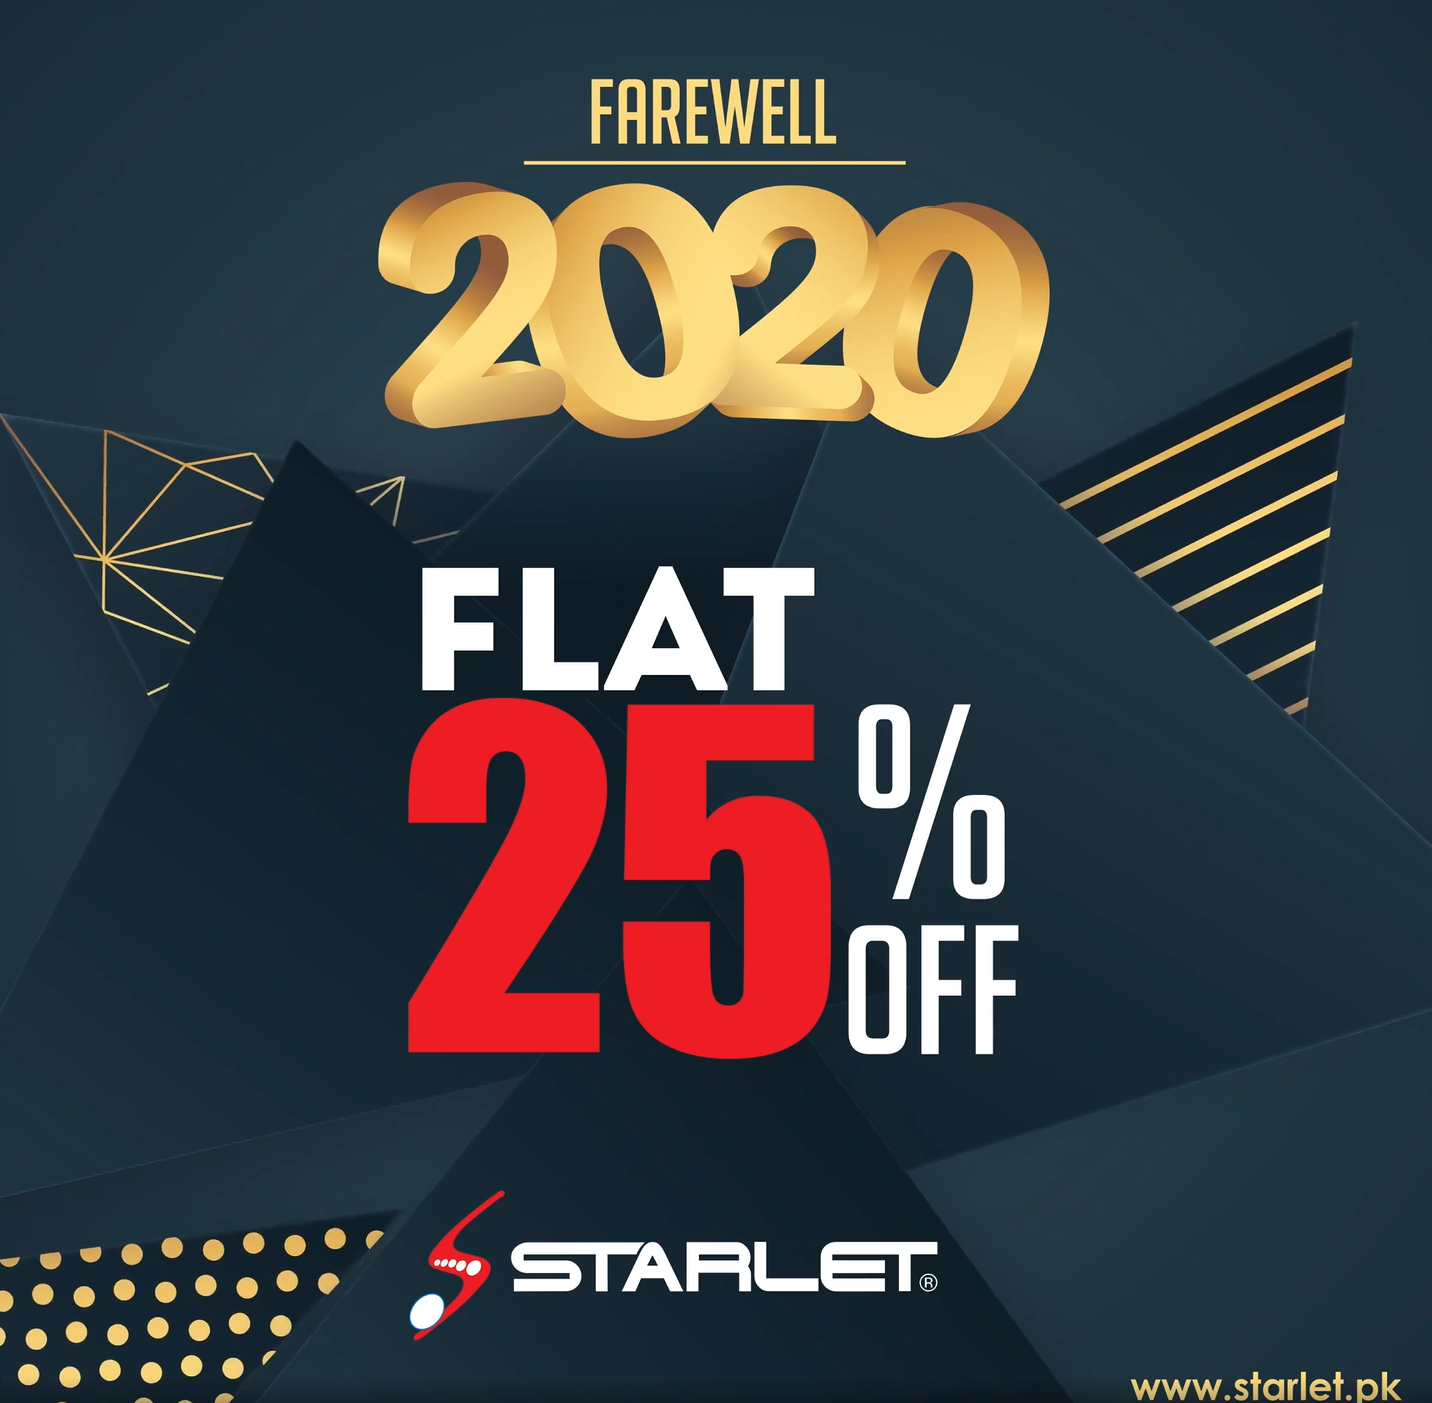 Starlet Shoes - Exclusive Farewell SALE